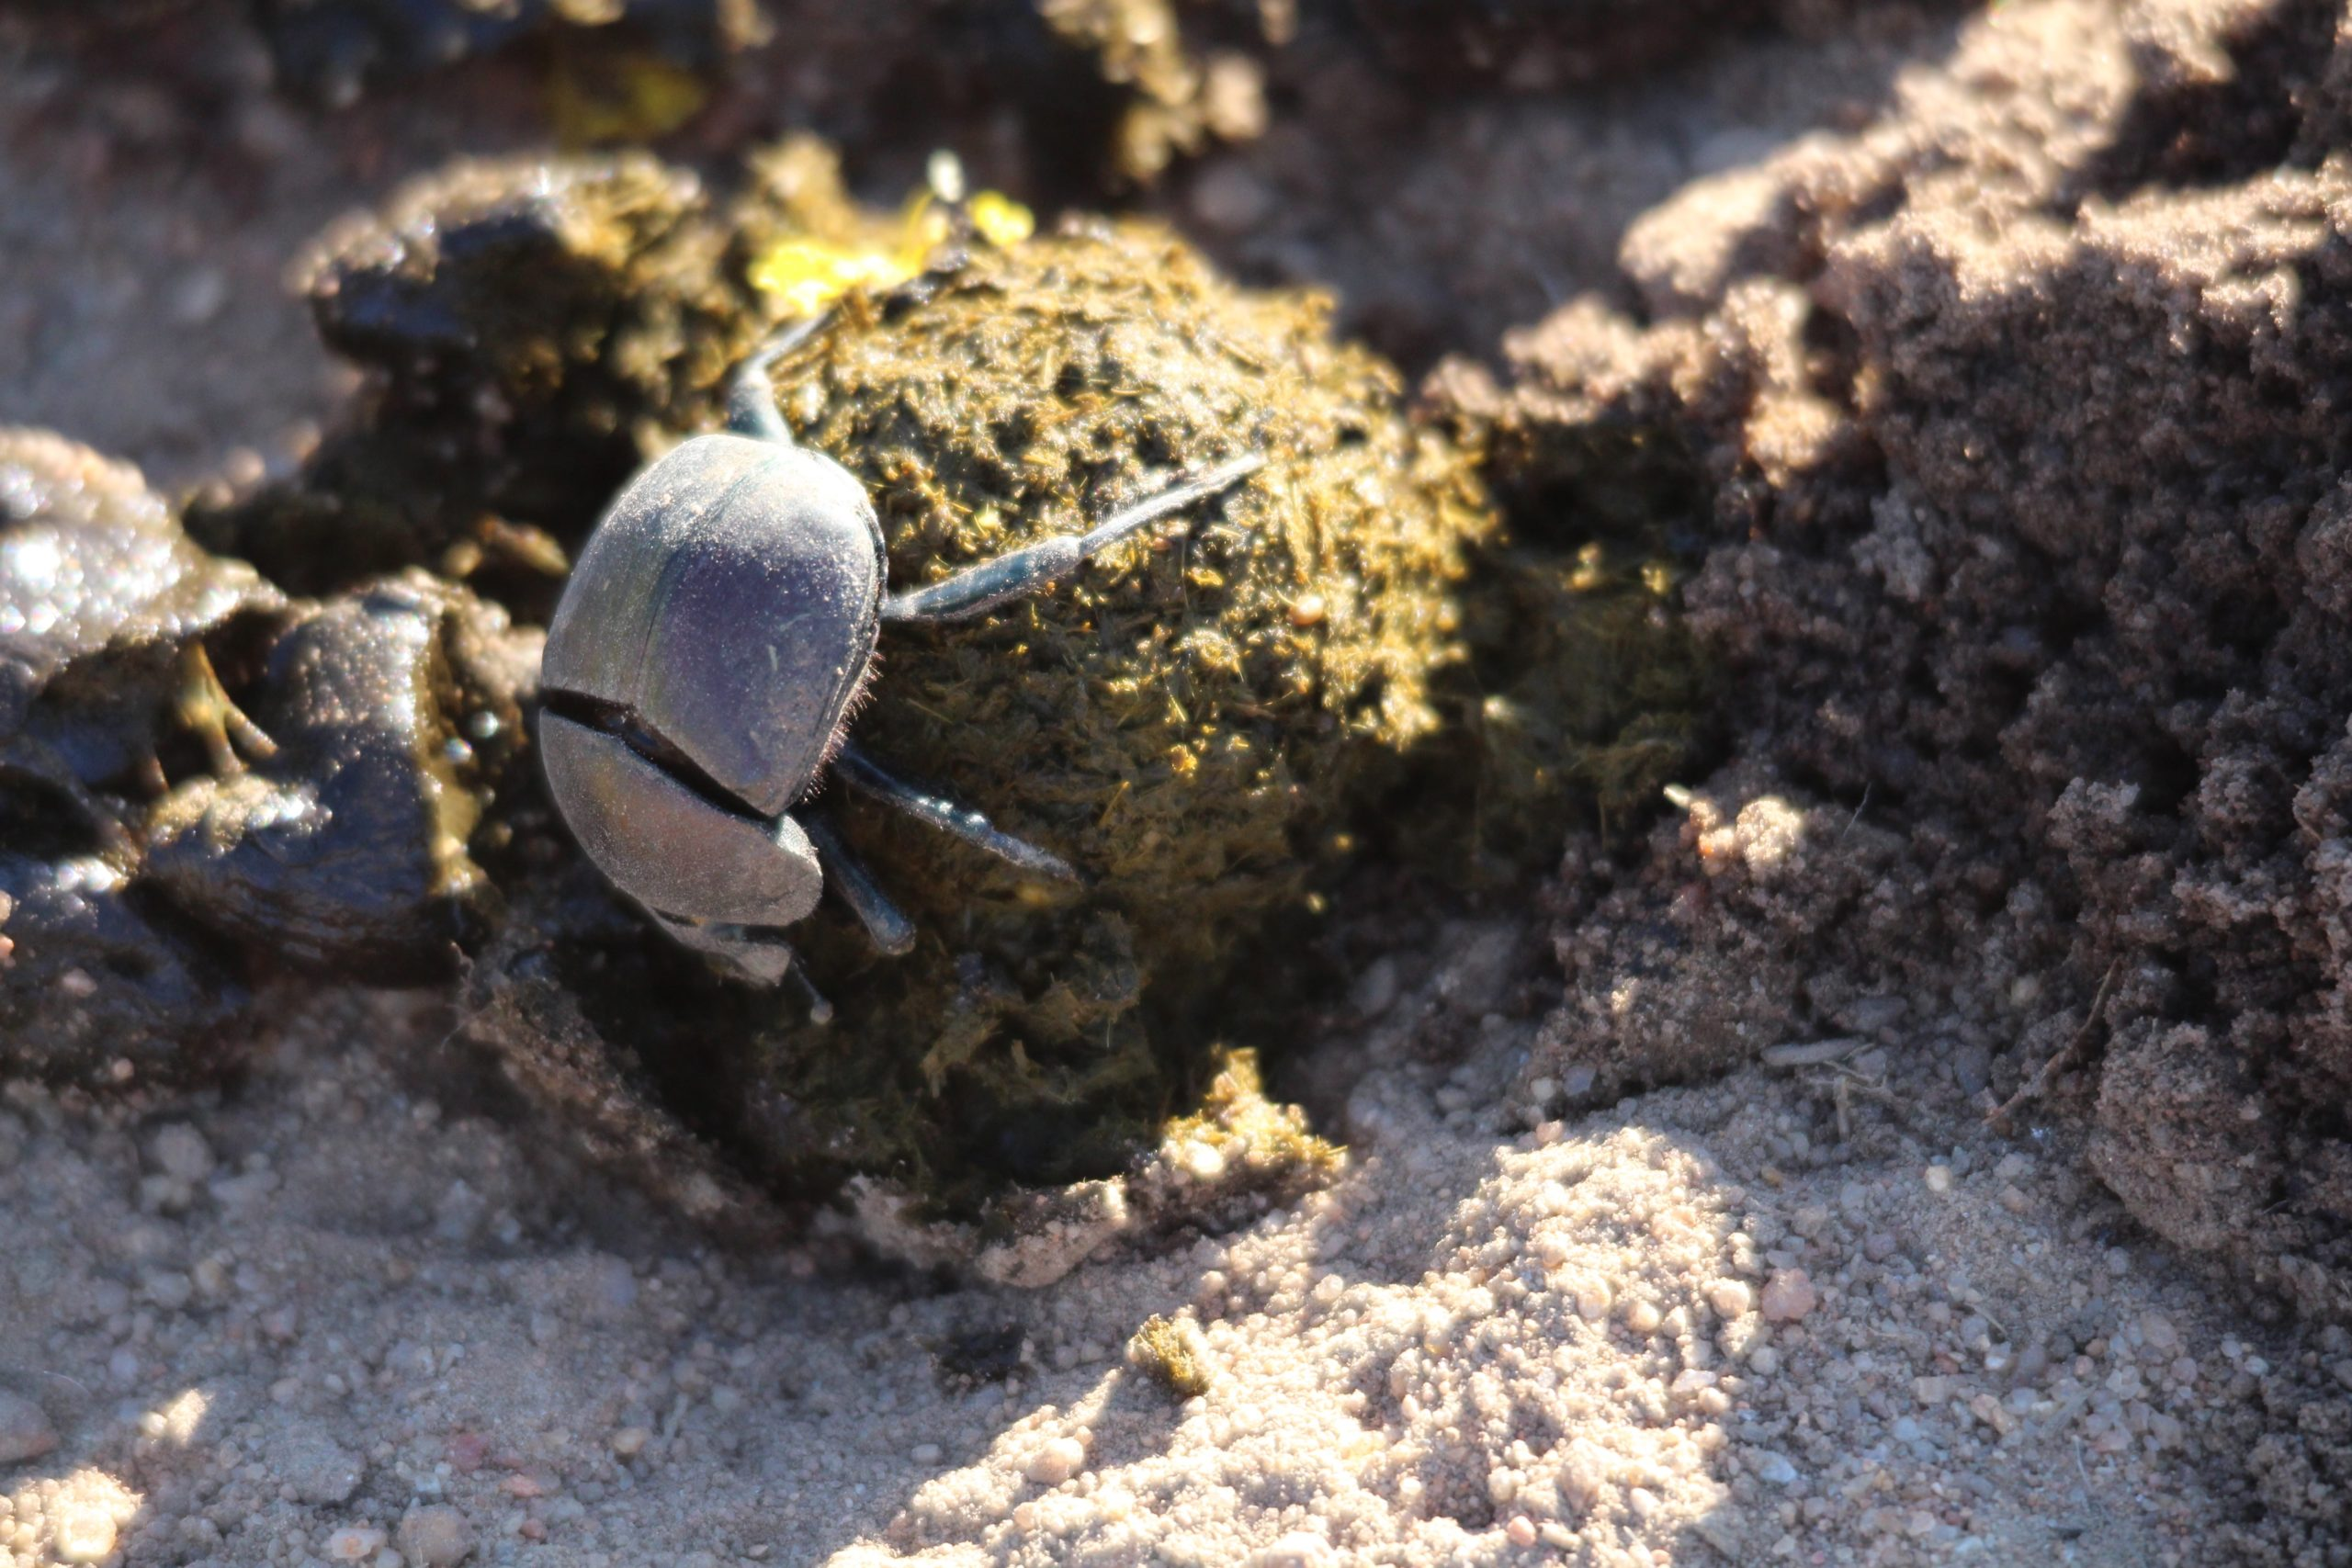 Dung beetle season